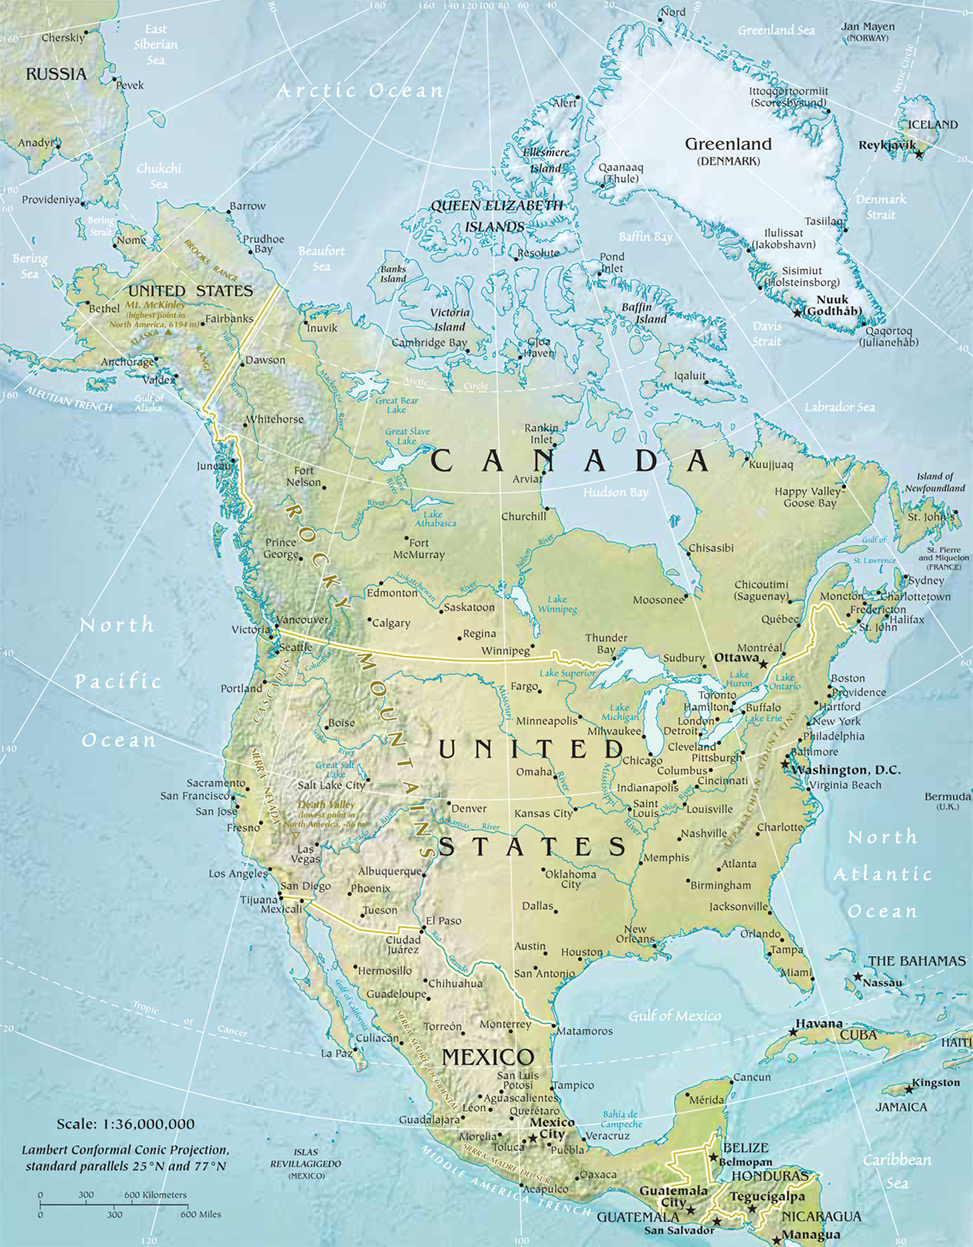 North America Physical Map - Physical features of canada and the united states